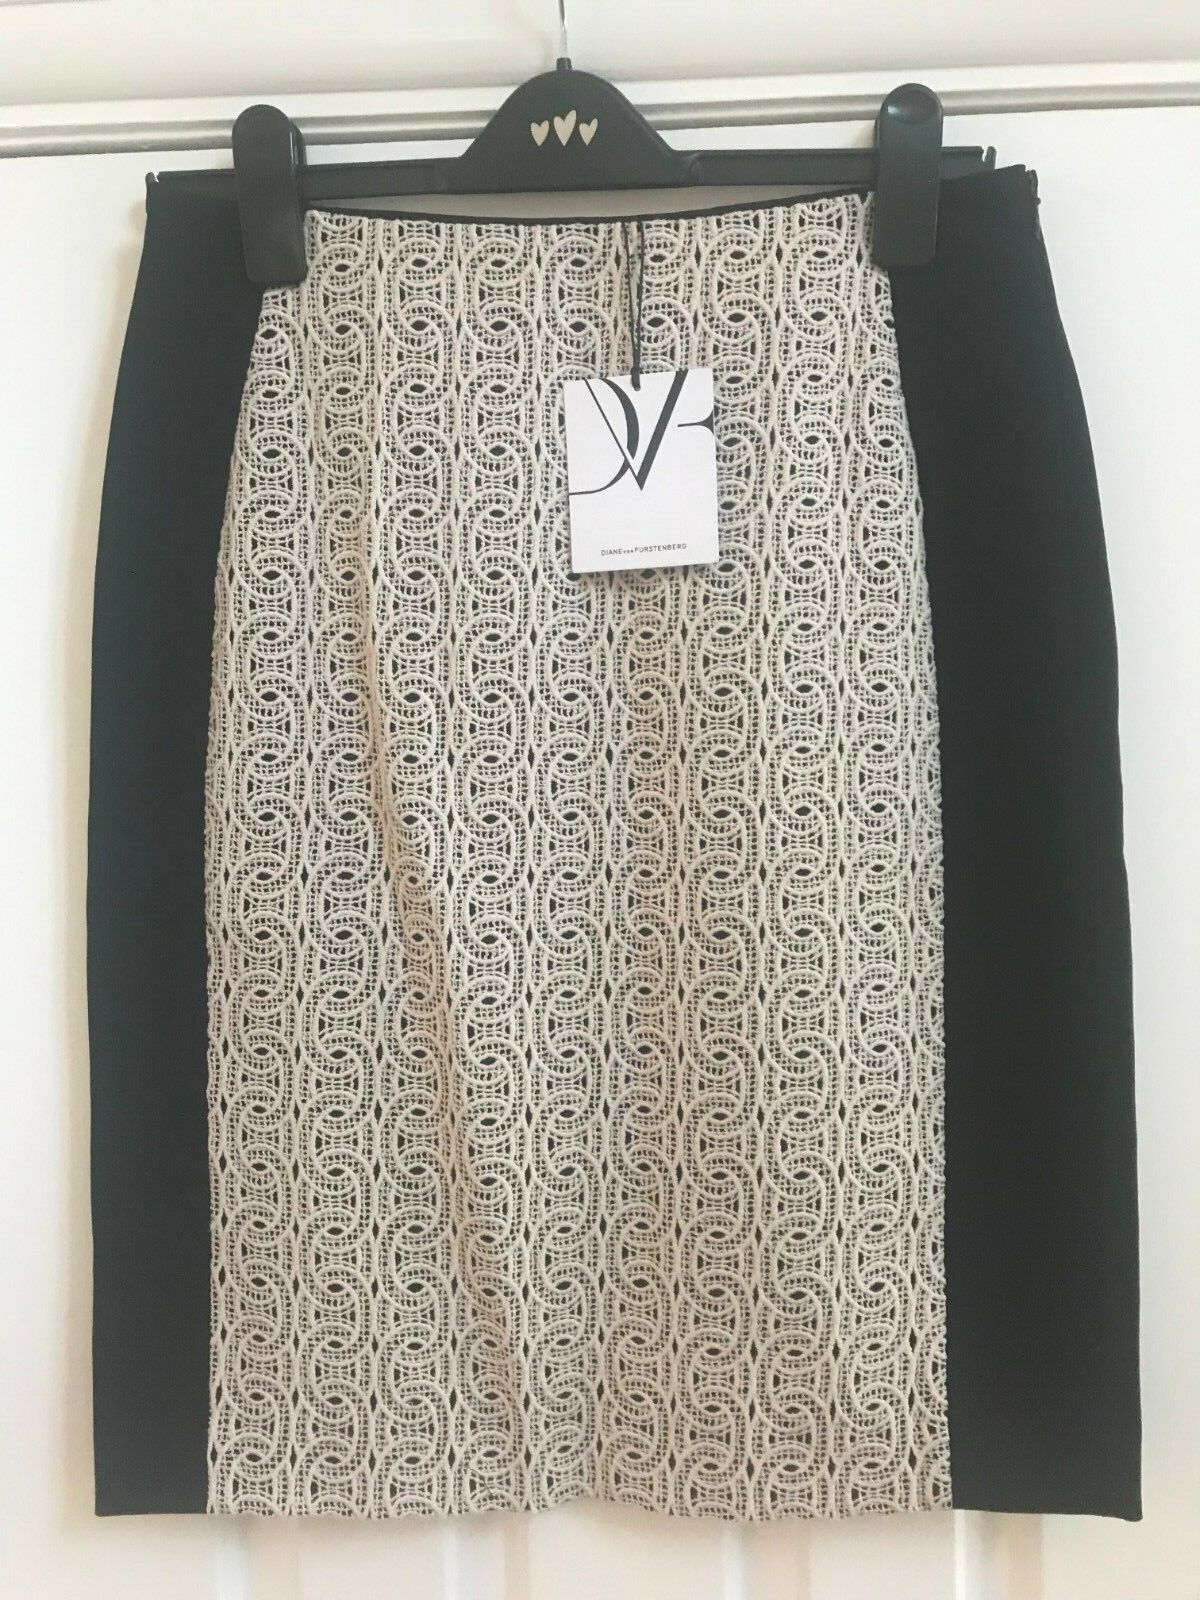 DIANE VON FURSTENBERG MAHLIA CHAINS LACE SKIRT UK SIZE 10 BRAND NEW WITH TAGS